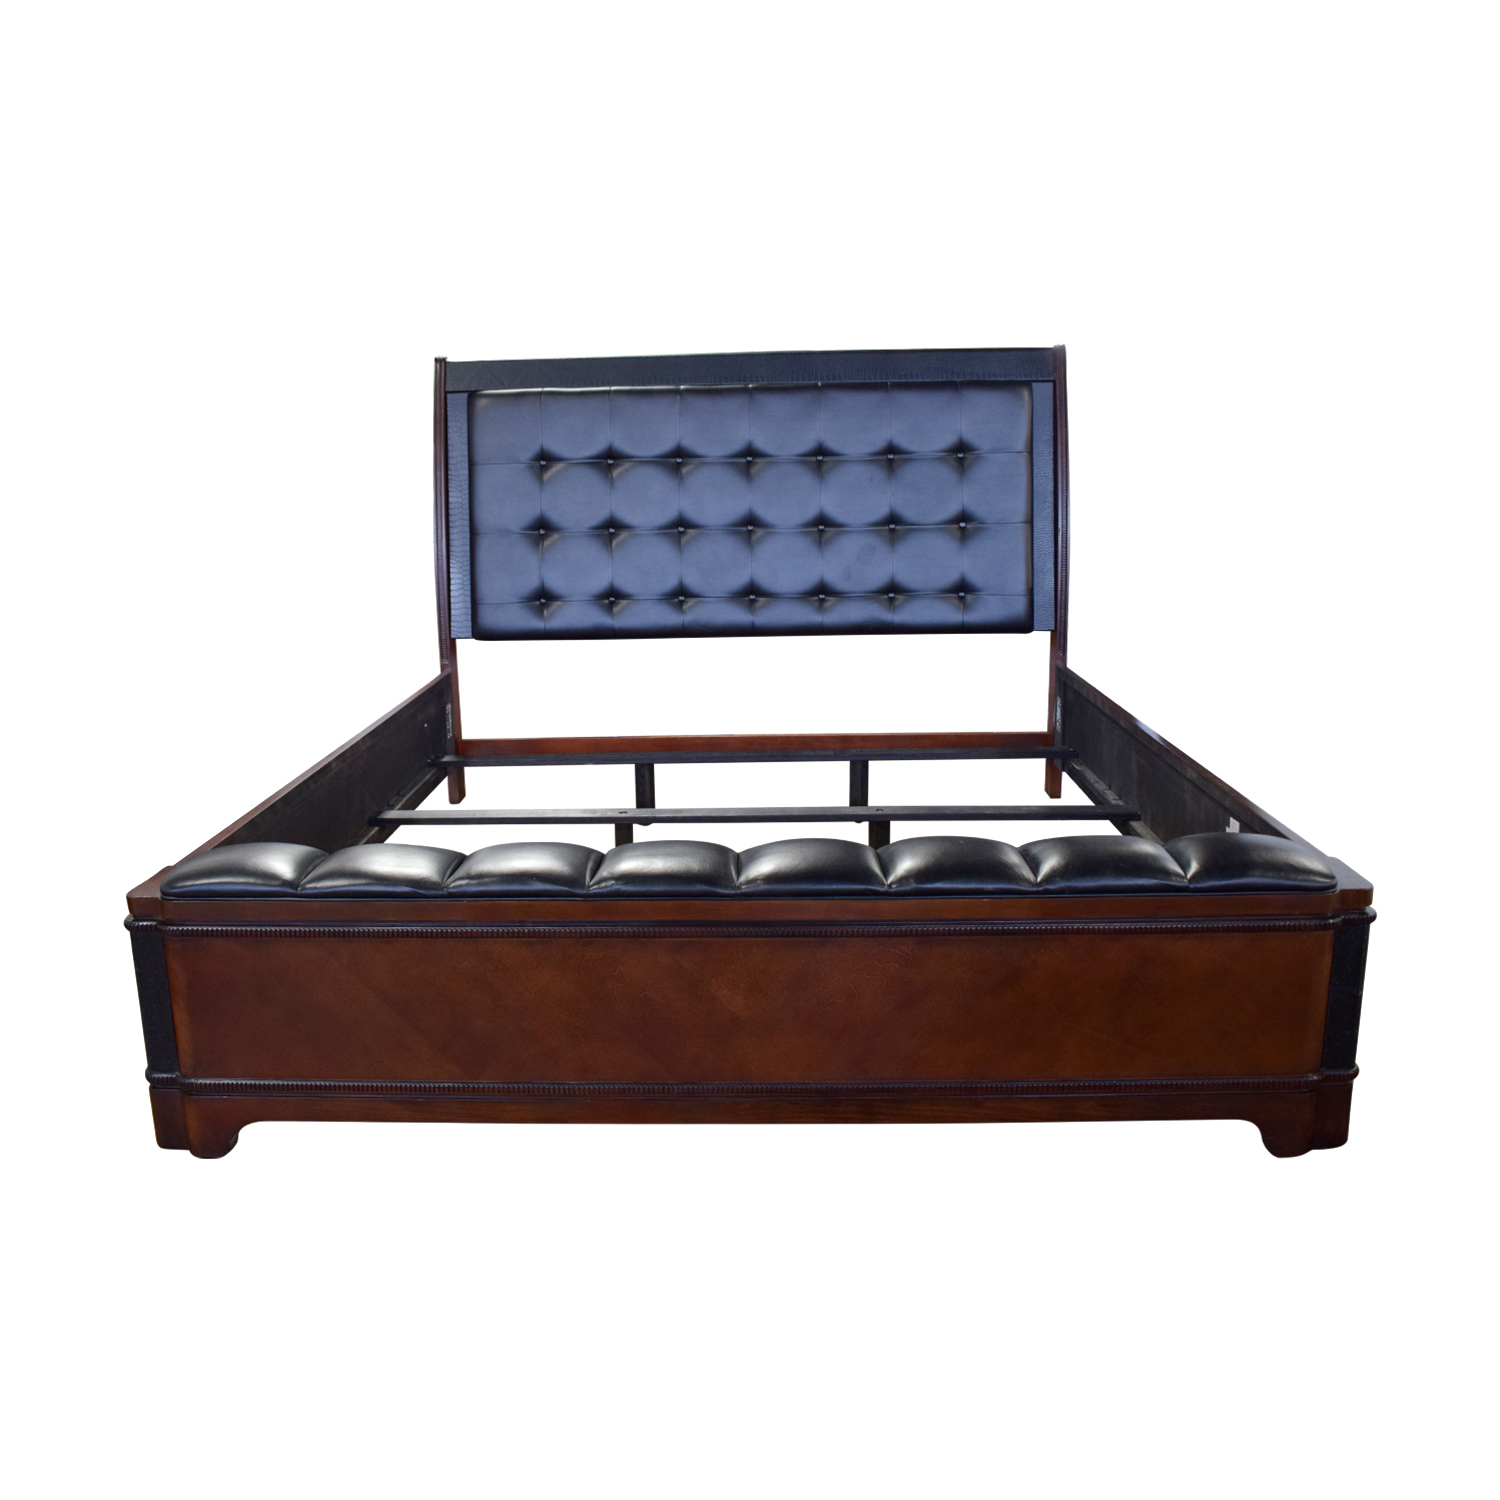 Stupendous 80 Off Raymour Flanigan Raymour And Flanigan Dundee Black Leather And Wood King Bed Frame Beds Inzonedesignstudio Interior Chair Design Inzonedesignstudiocom